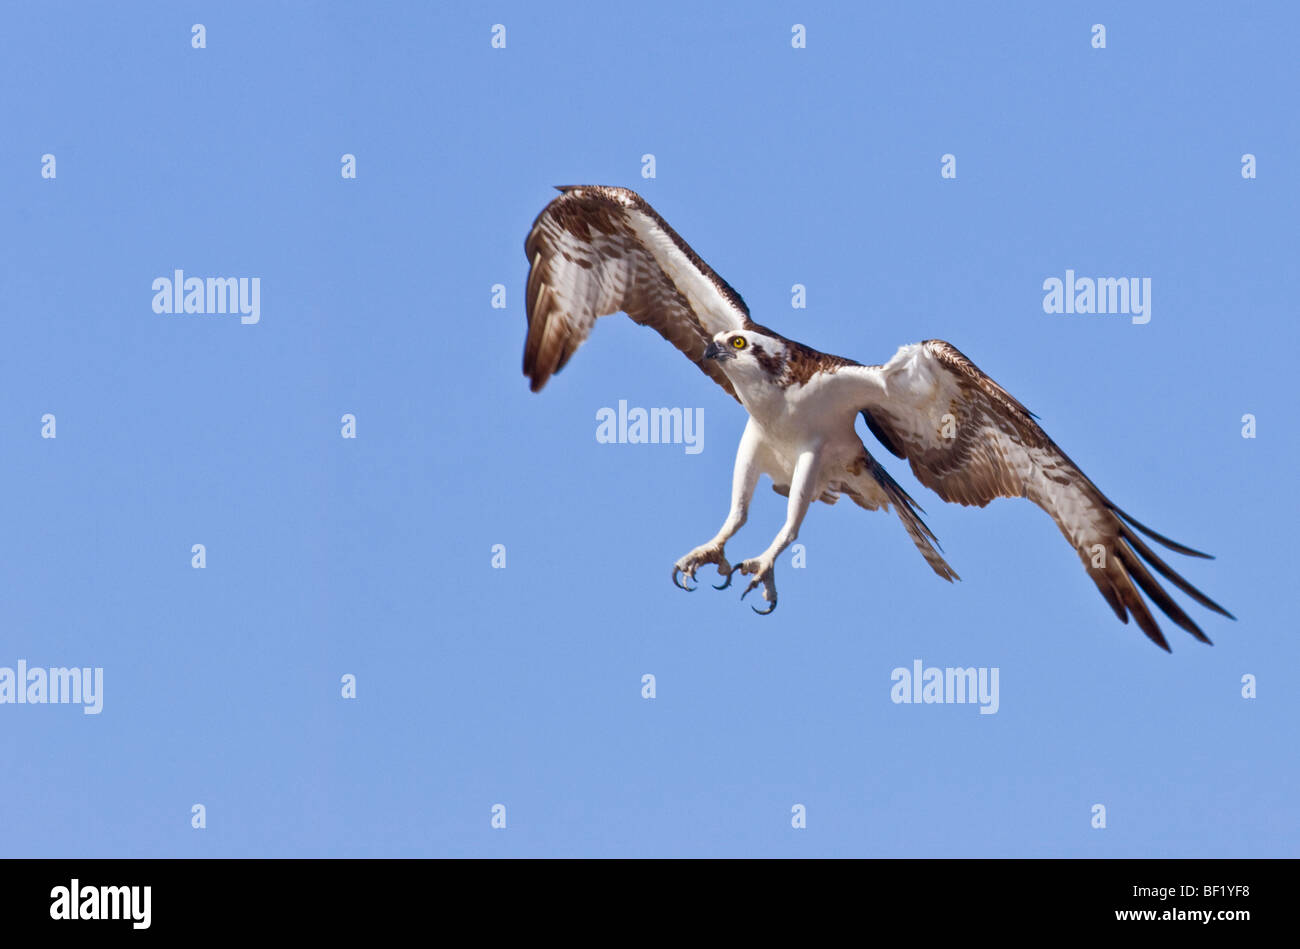 Osprey, Pandion haliaetus, talons spread in attack formation - Stock Image